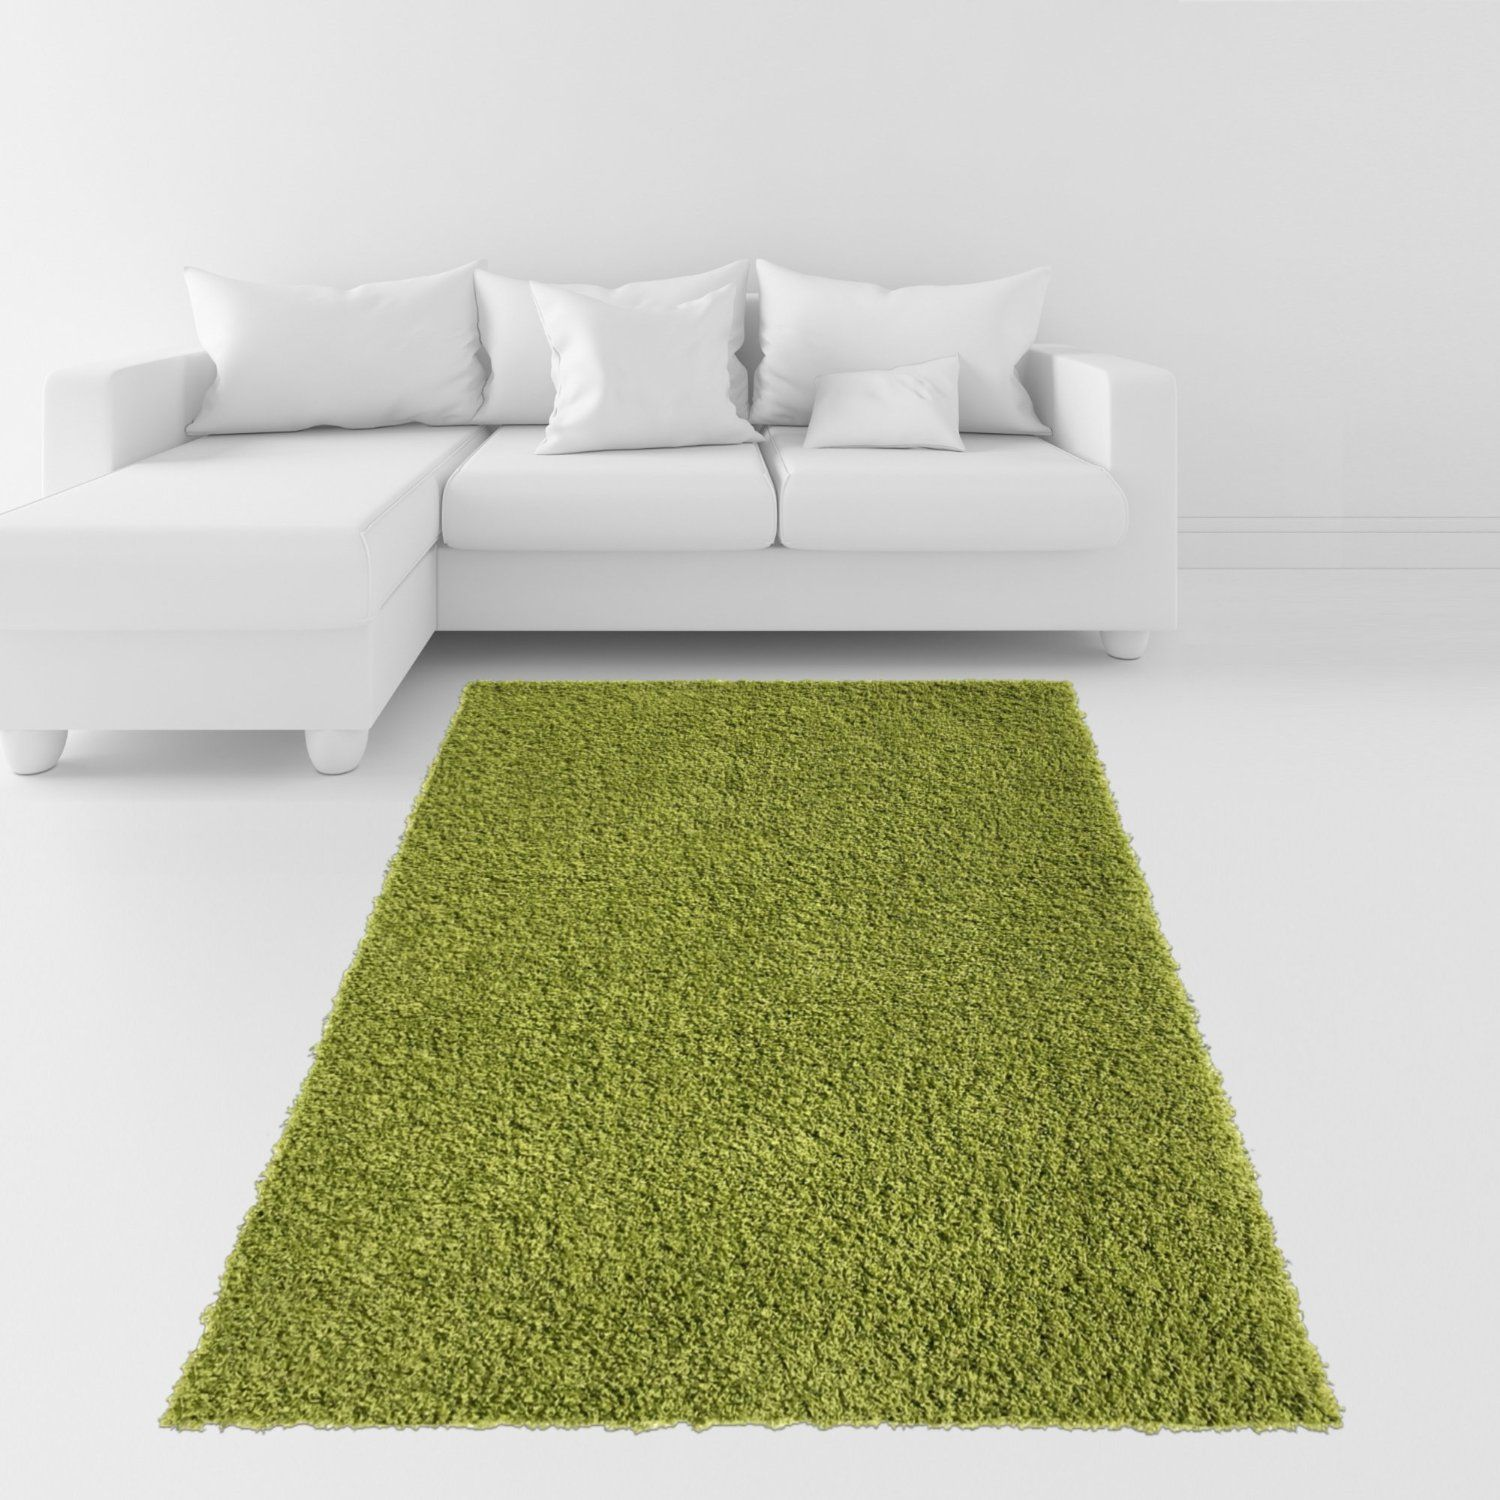 Green Shag Rug Modern Design High Quality Luxury Area Rug | Rugs .